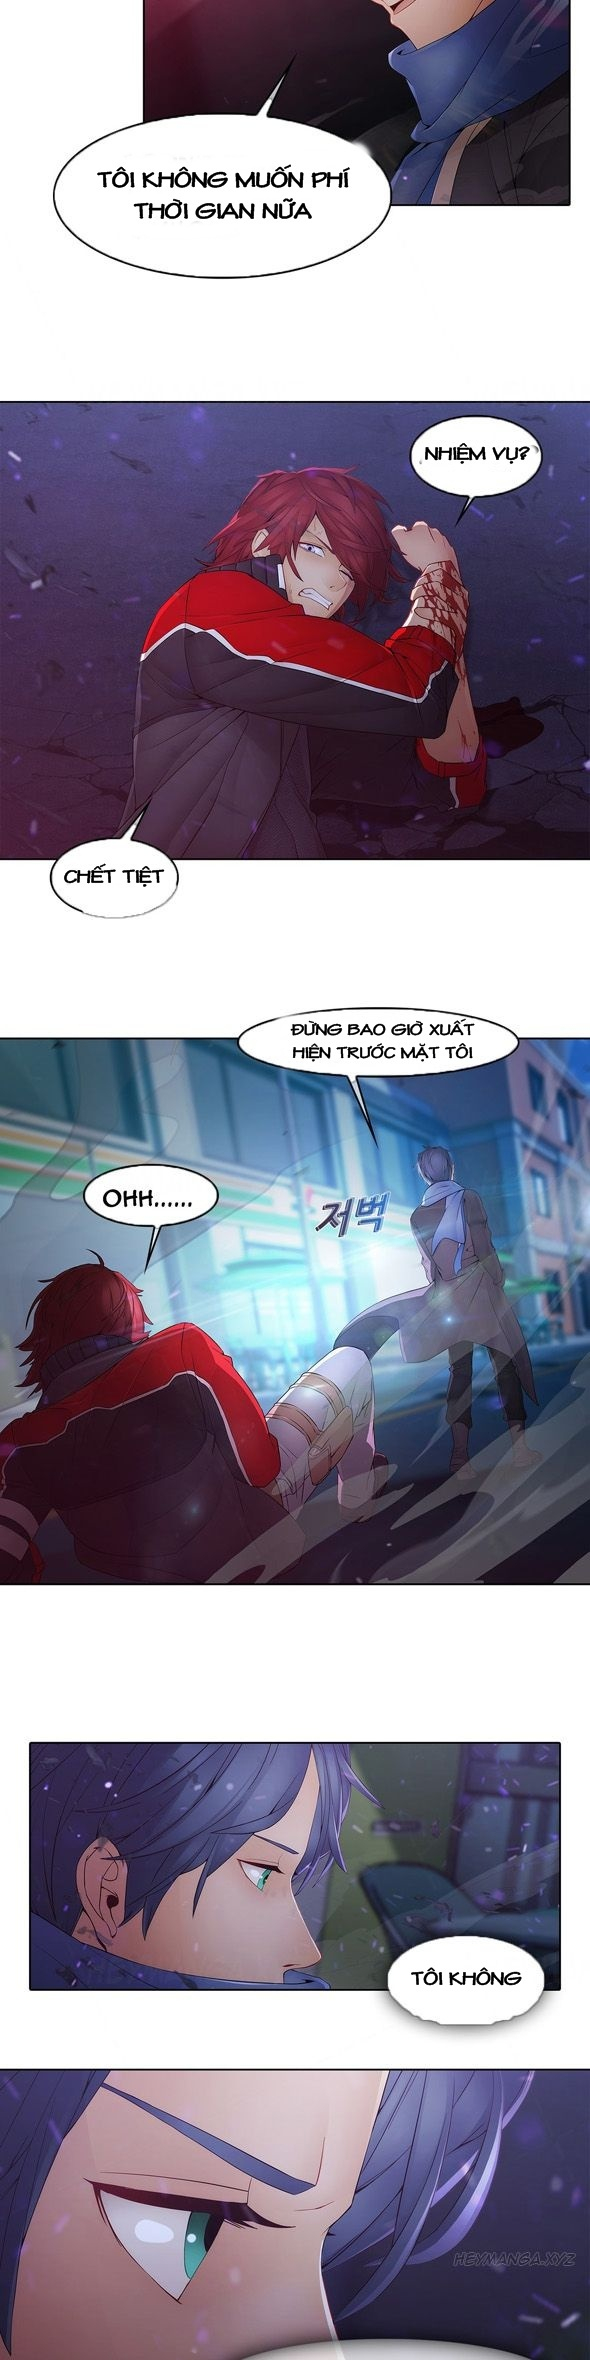 HentaiVN.net - Ảnh 13 - The Matrix - Chap 9